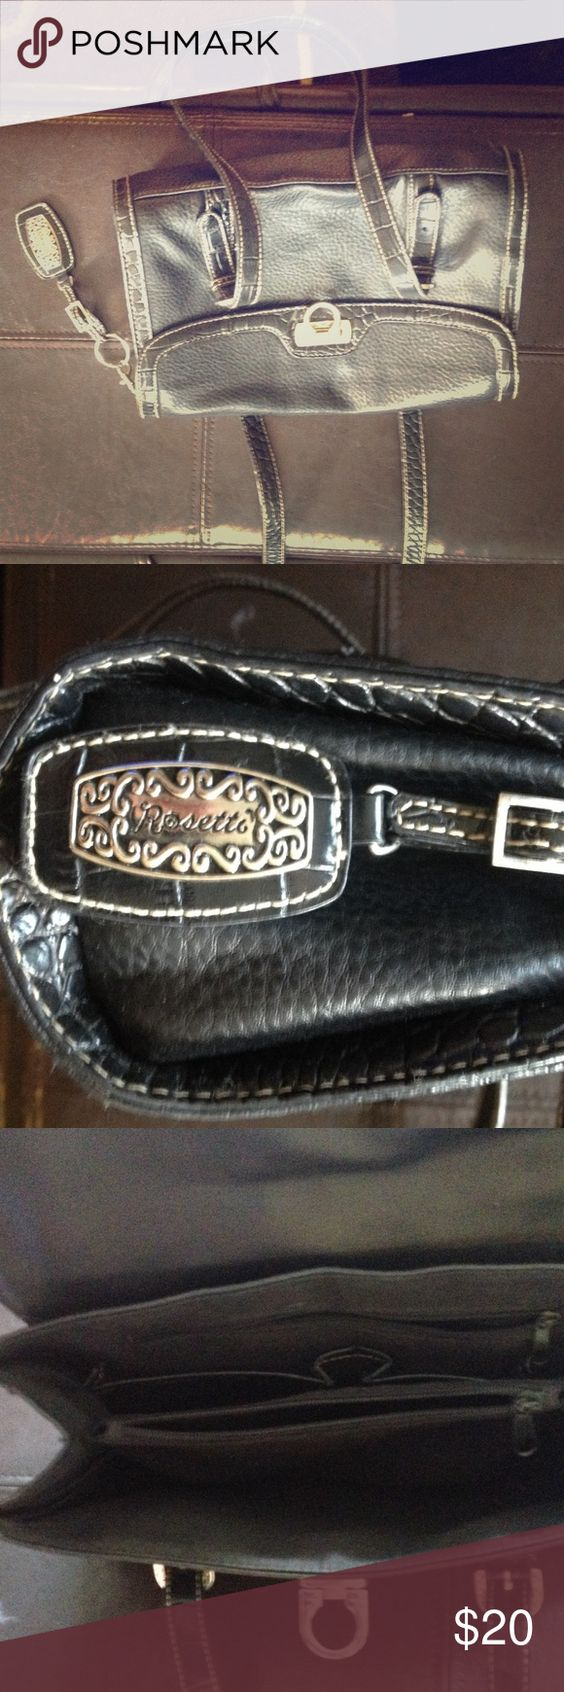 HOLIDAY SALERosetti Purse Very nice Rosetti Brand purse. Faux black leather with silver accents. New without tags. Spotless interior Rosetti Bags Shoulder Bags